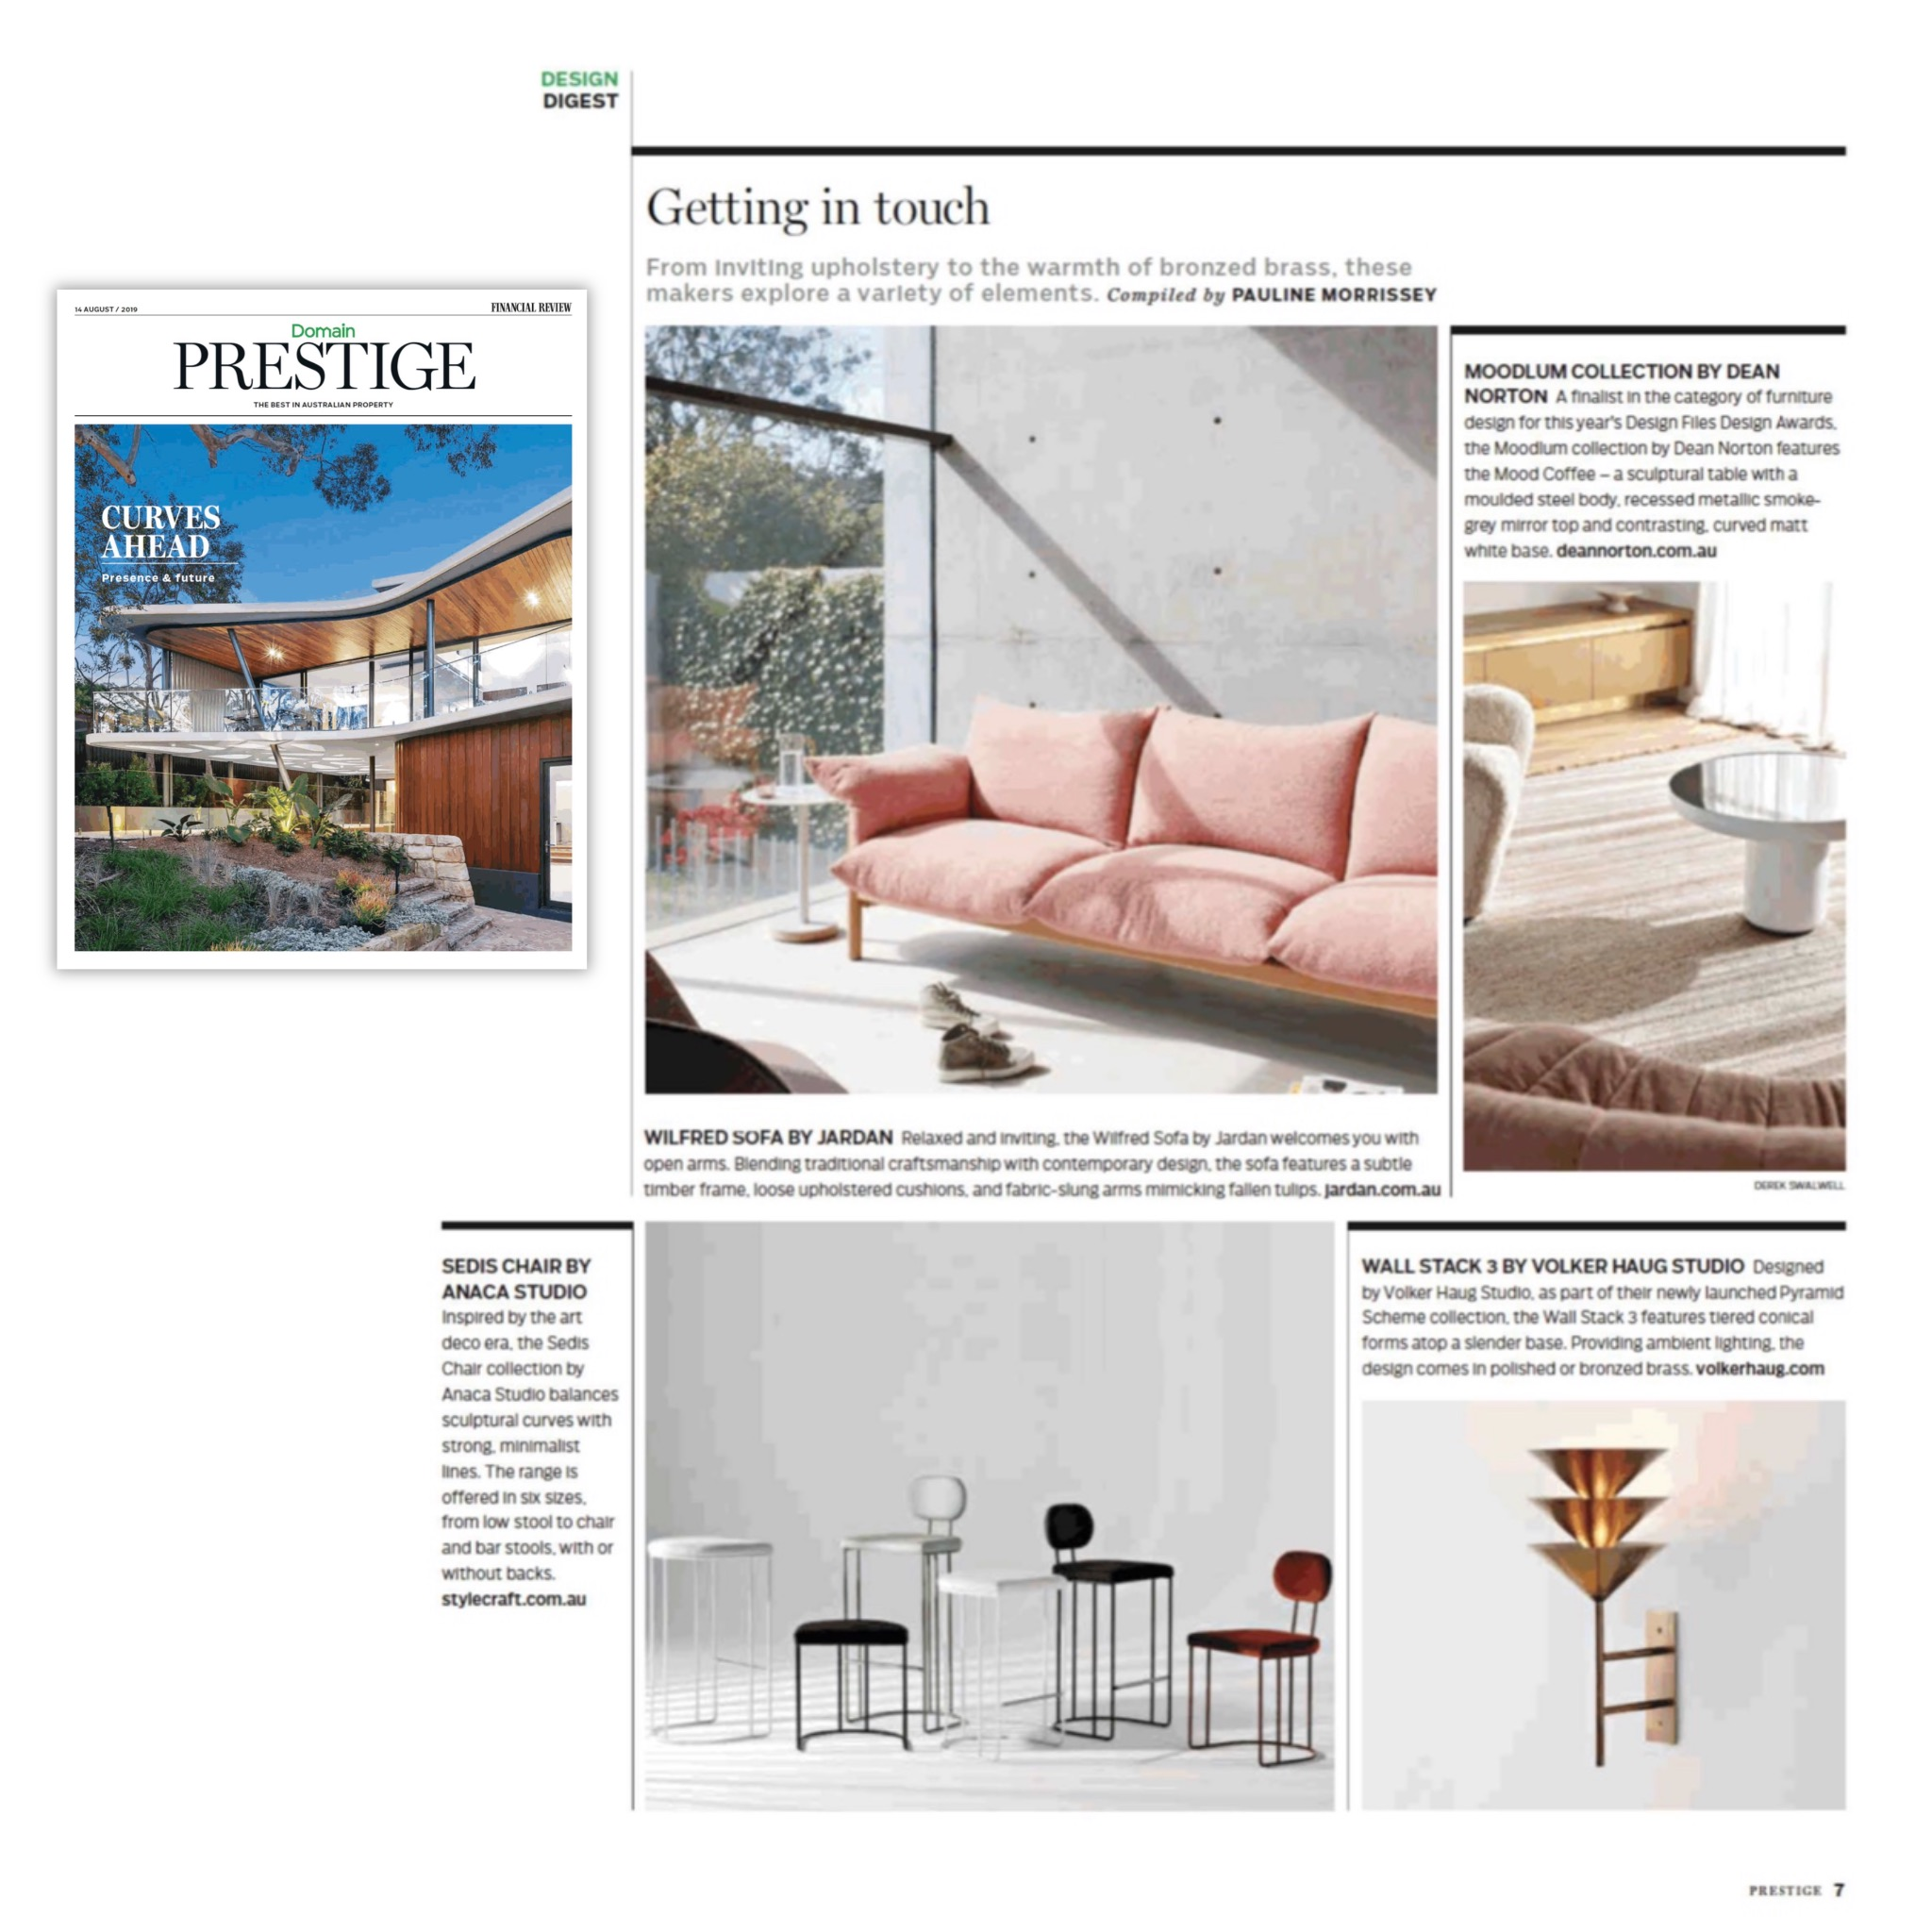 Financial Review - Domain Prestige - Aug 2019 - Sedis seating Collection